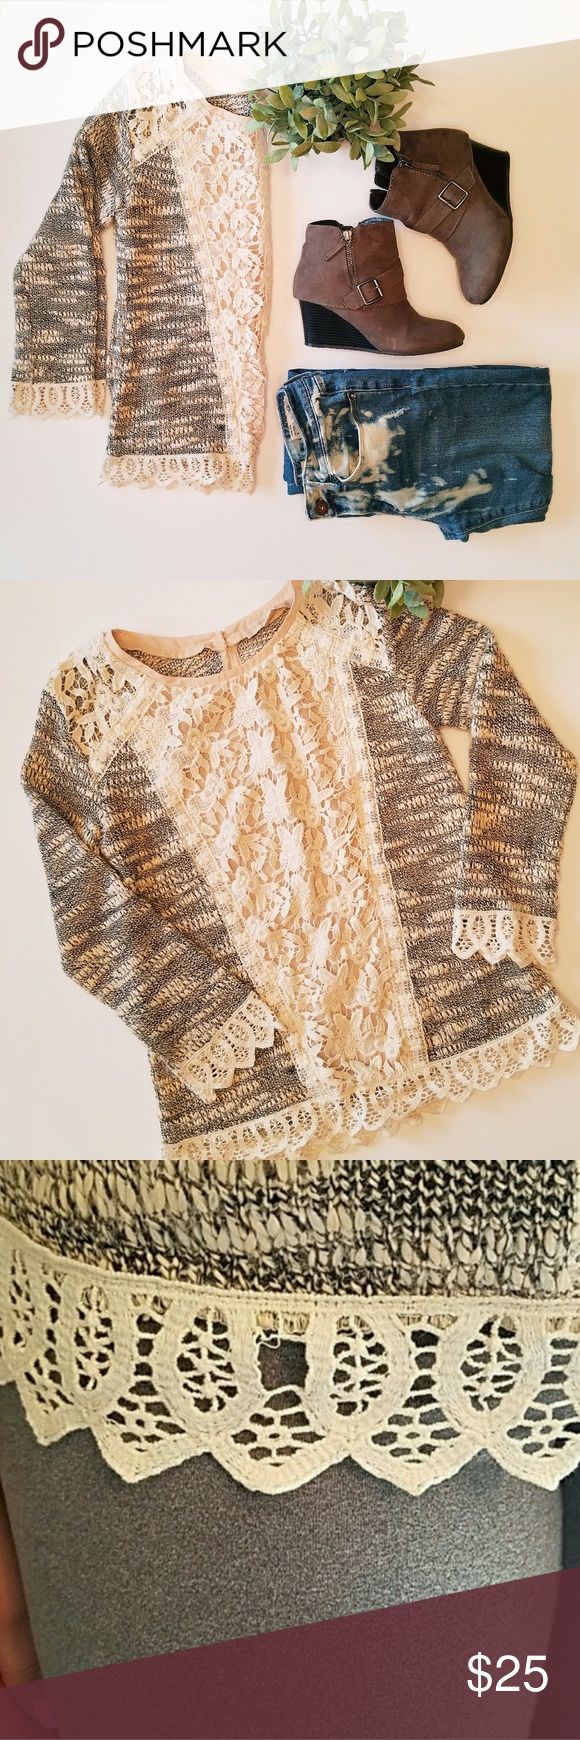 """Anthropologie champagne and strawberry sweater A beautiful sweater with nice detail lacing Colors include black, cream, and Peach. Open to offers Bust 18 """" Armpit down 16"""" Photo 5 will show a small imperfection on the lower half of the shirt. You can see in photo 3. you can hardly  notice it since it has crochet detail at the bottom. Anthropologie Sweaters"""